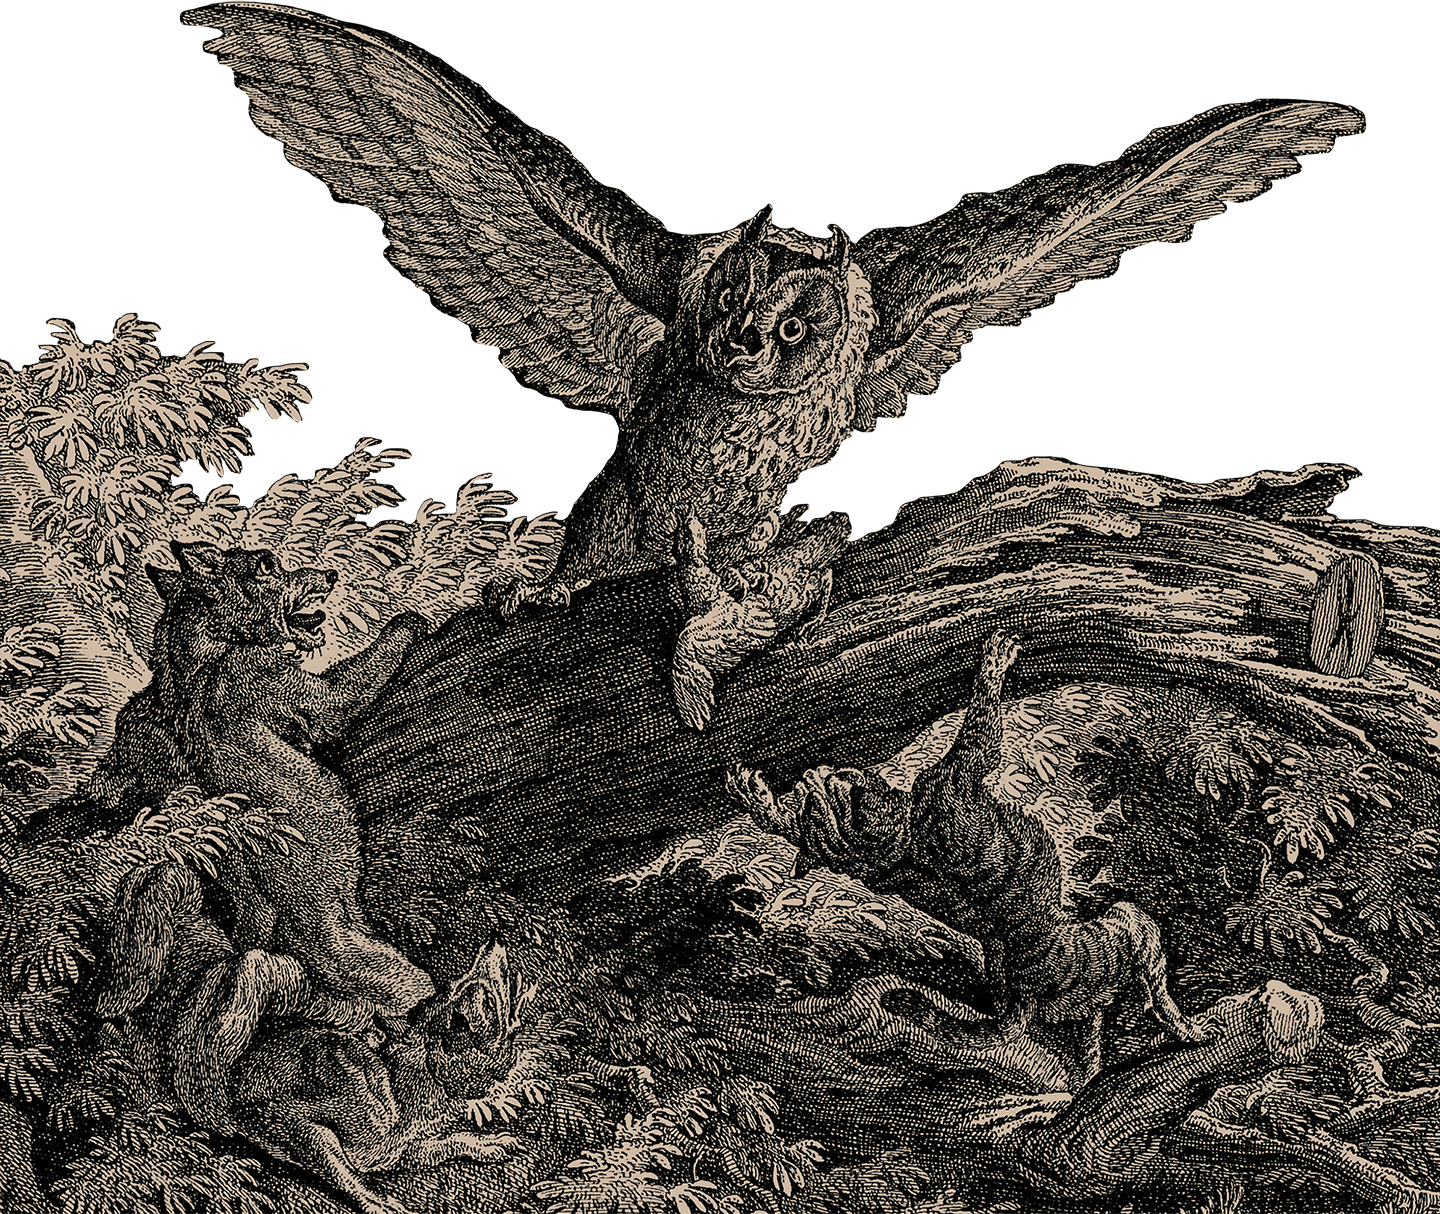 Owl and Lynx etching foreground